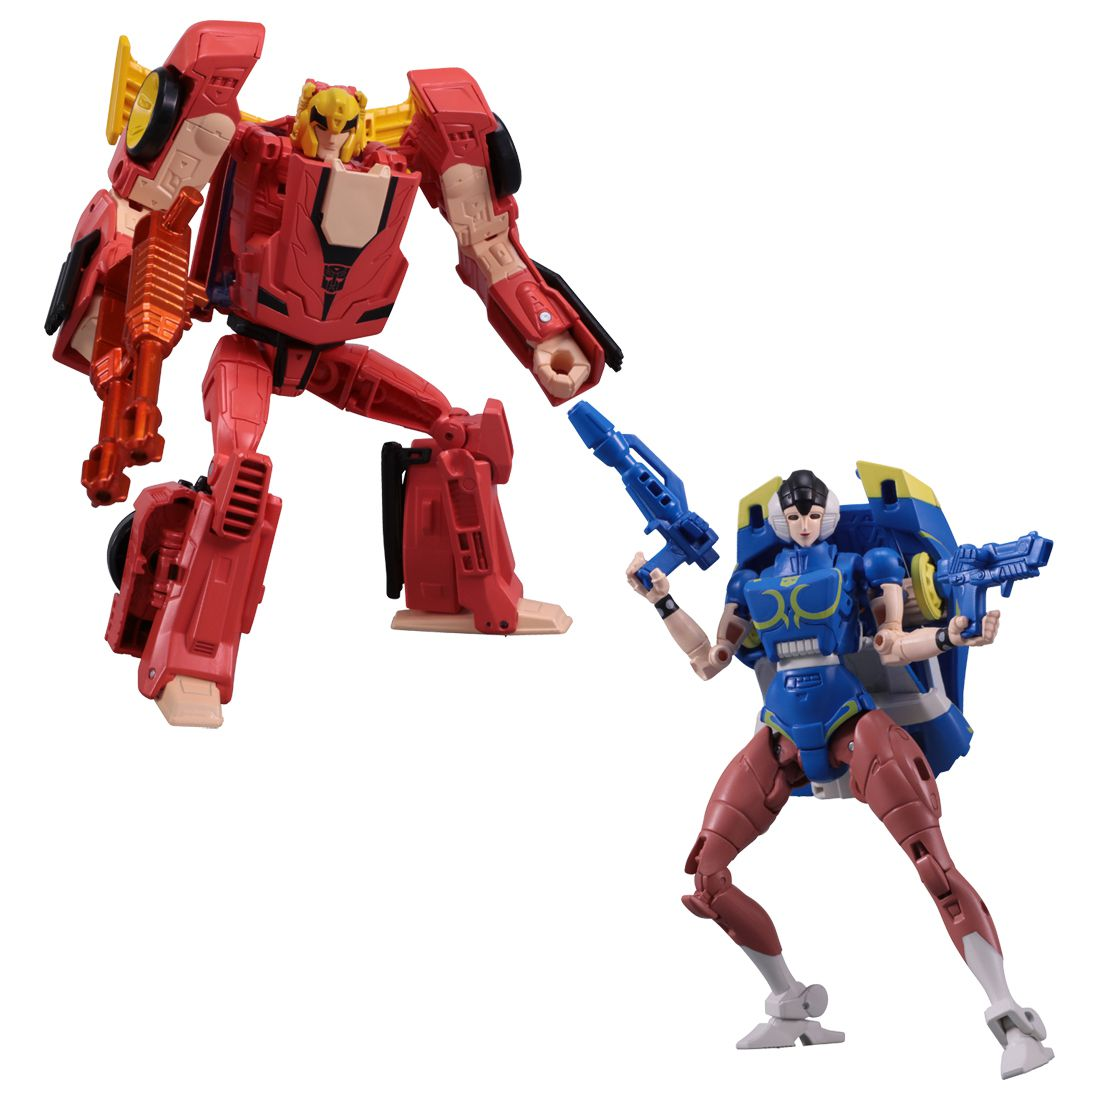 Street Fighter Transformers Toys Are Coming Next Year